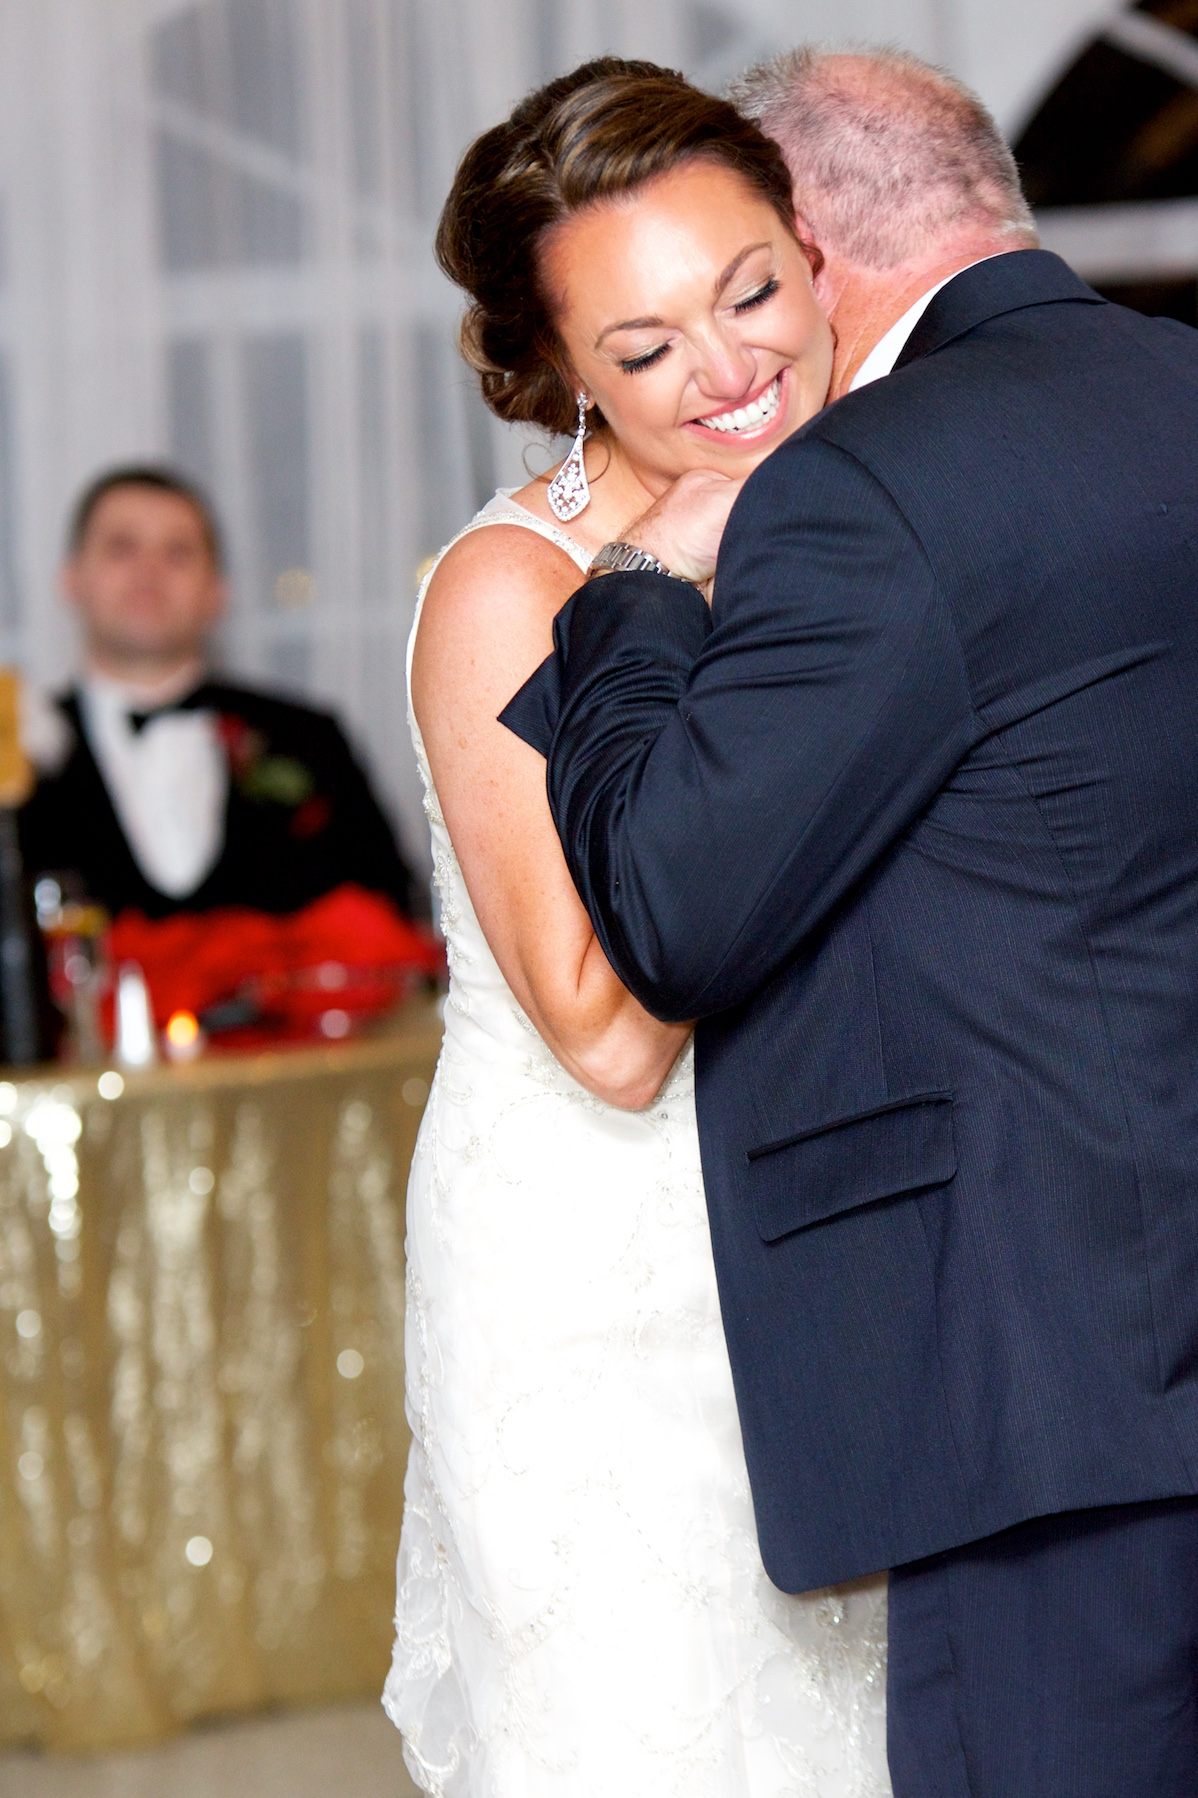 bride-dad-father daughter dance-first dance-photos.jpg